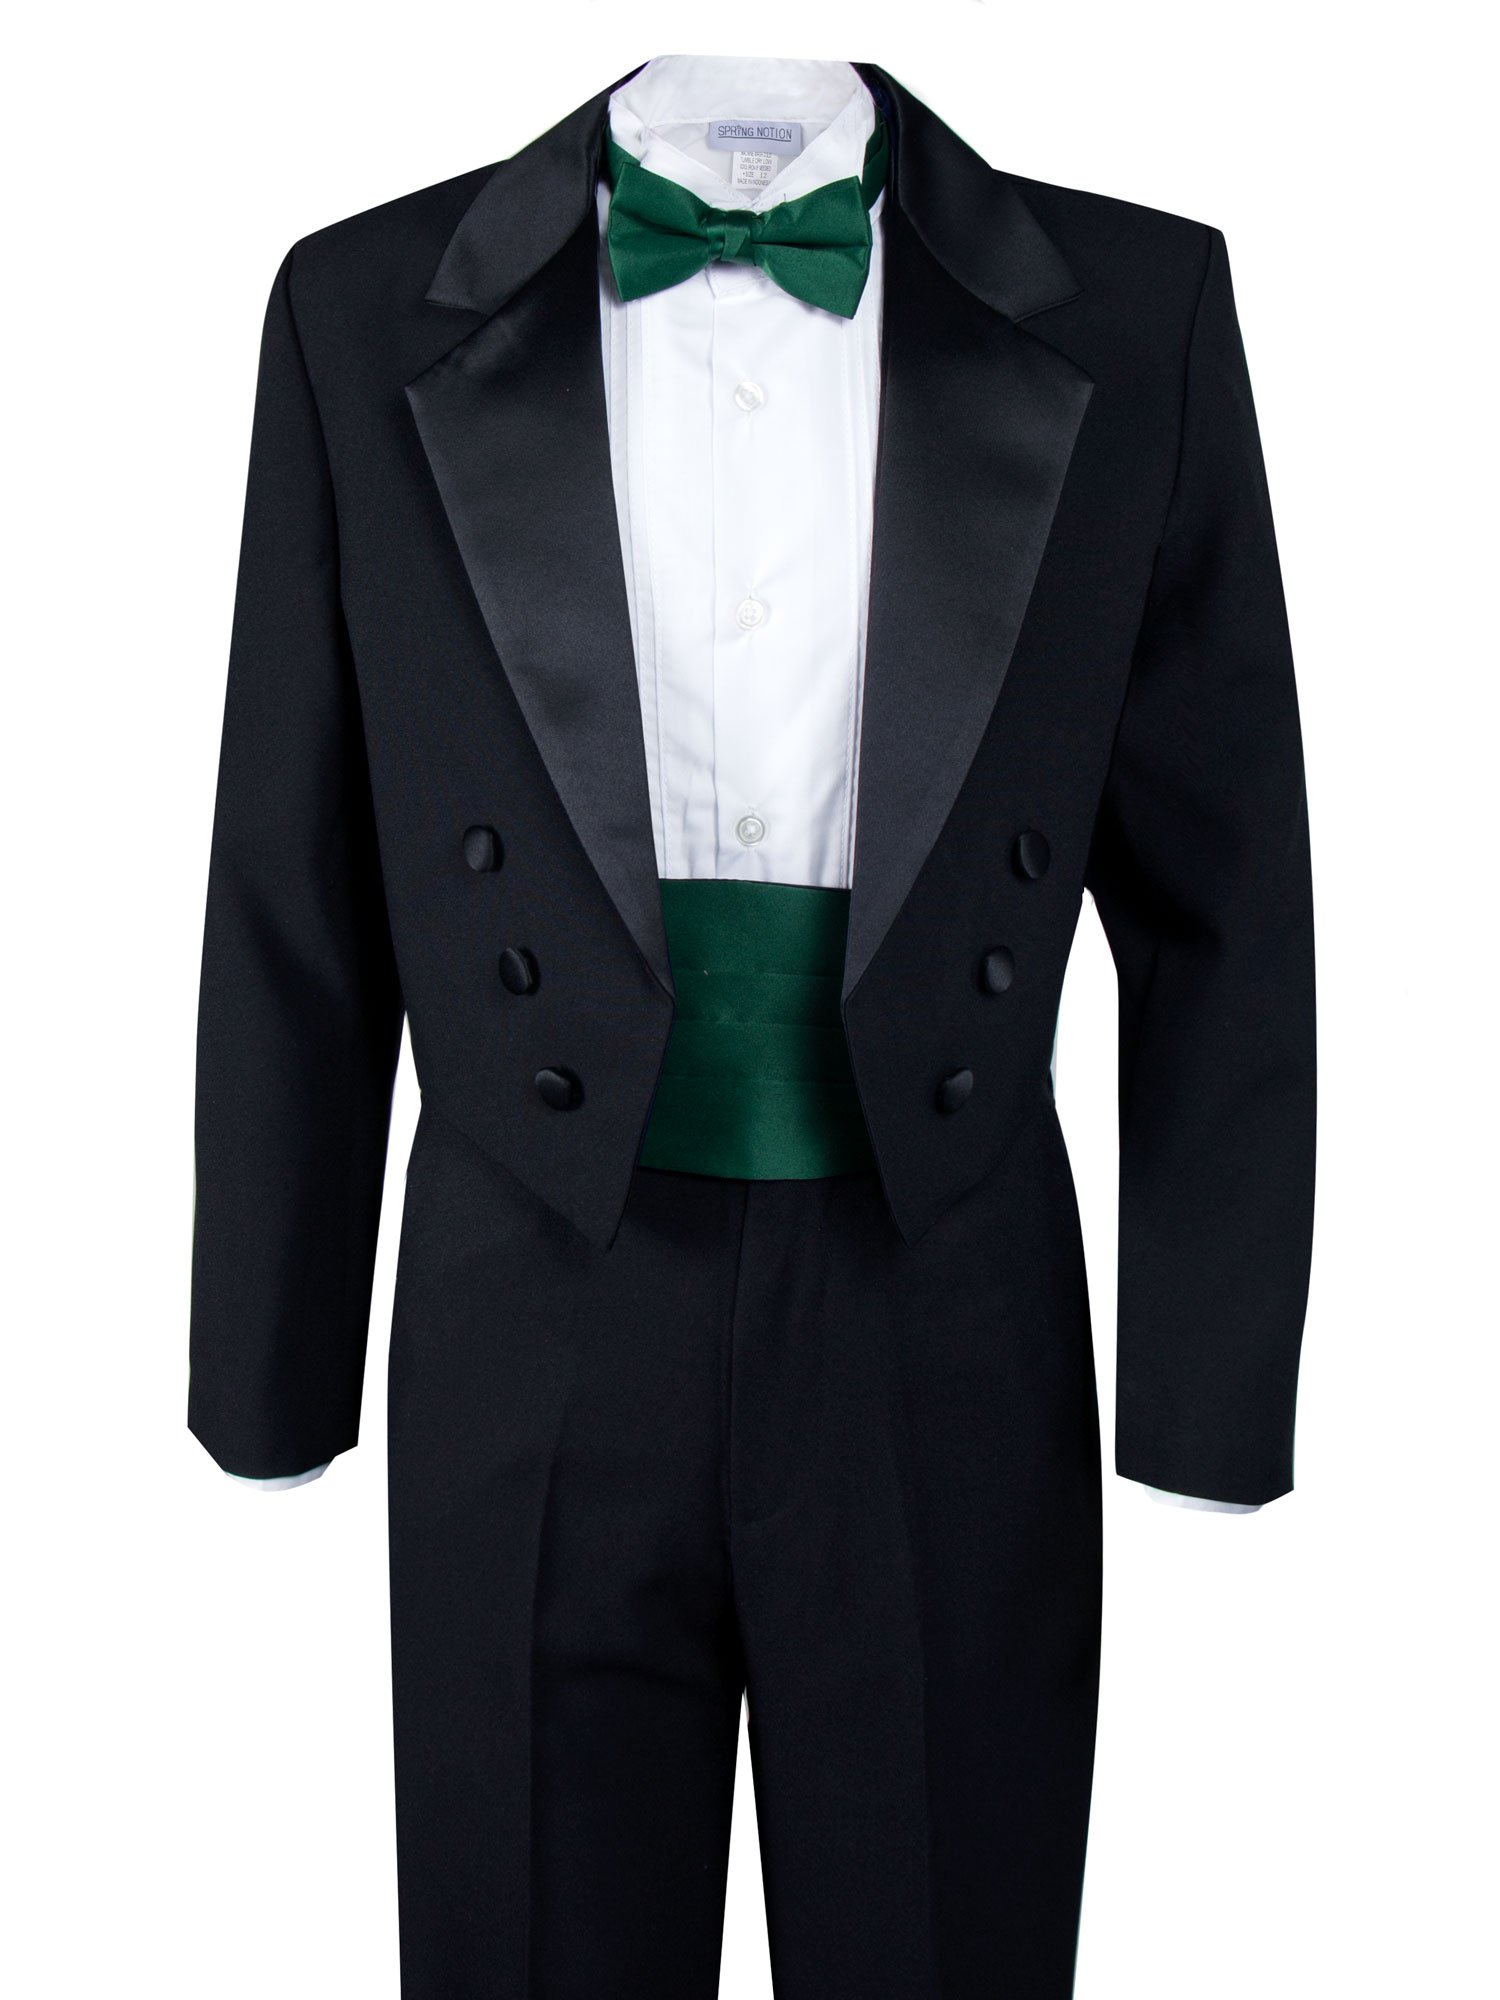 Spring Notion Boys' Black Classic Tuxedo with Tail Emerald 16